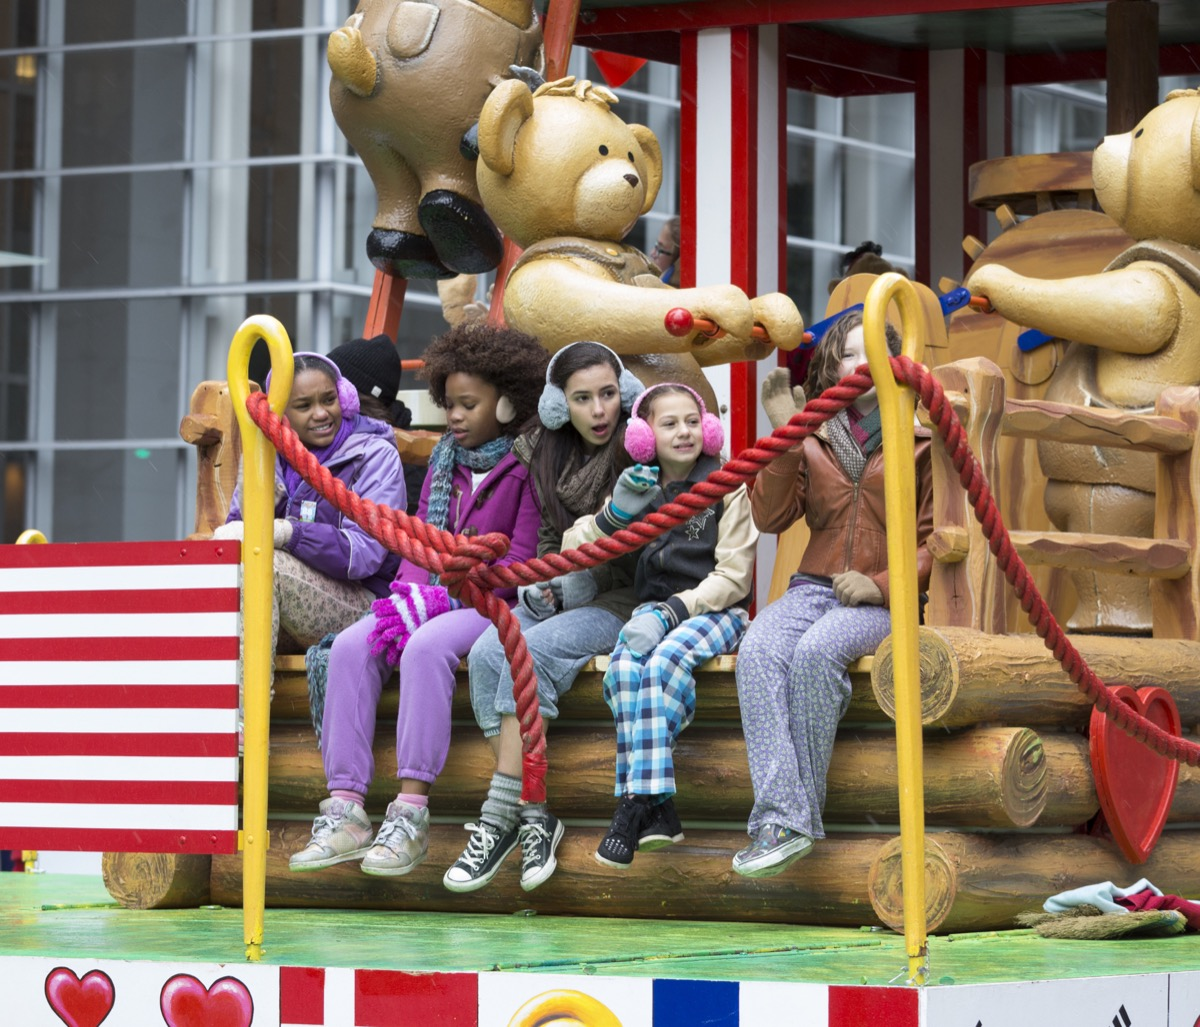 Kids on a float in the Macy's Thanksgiving Day Parade